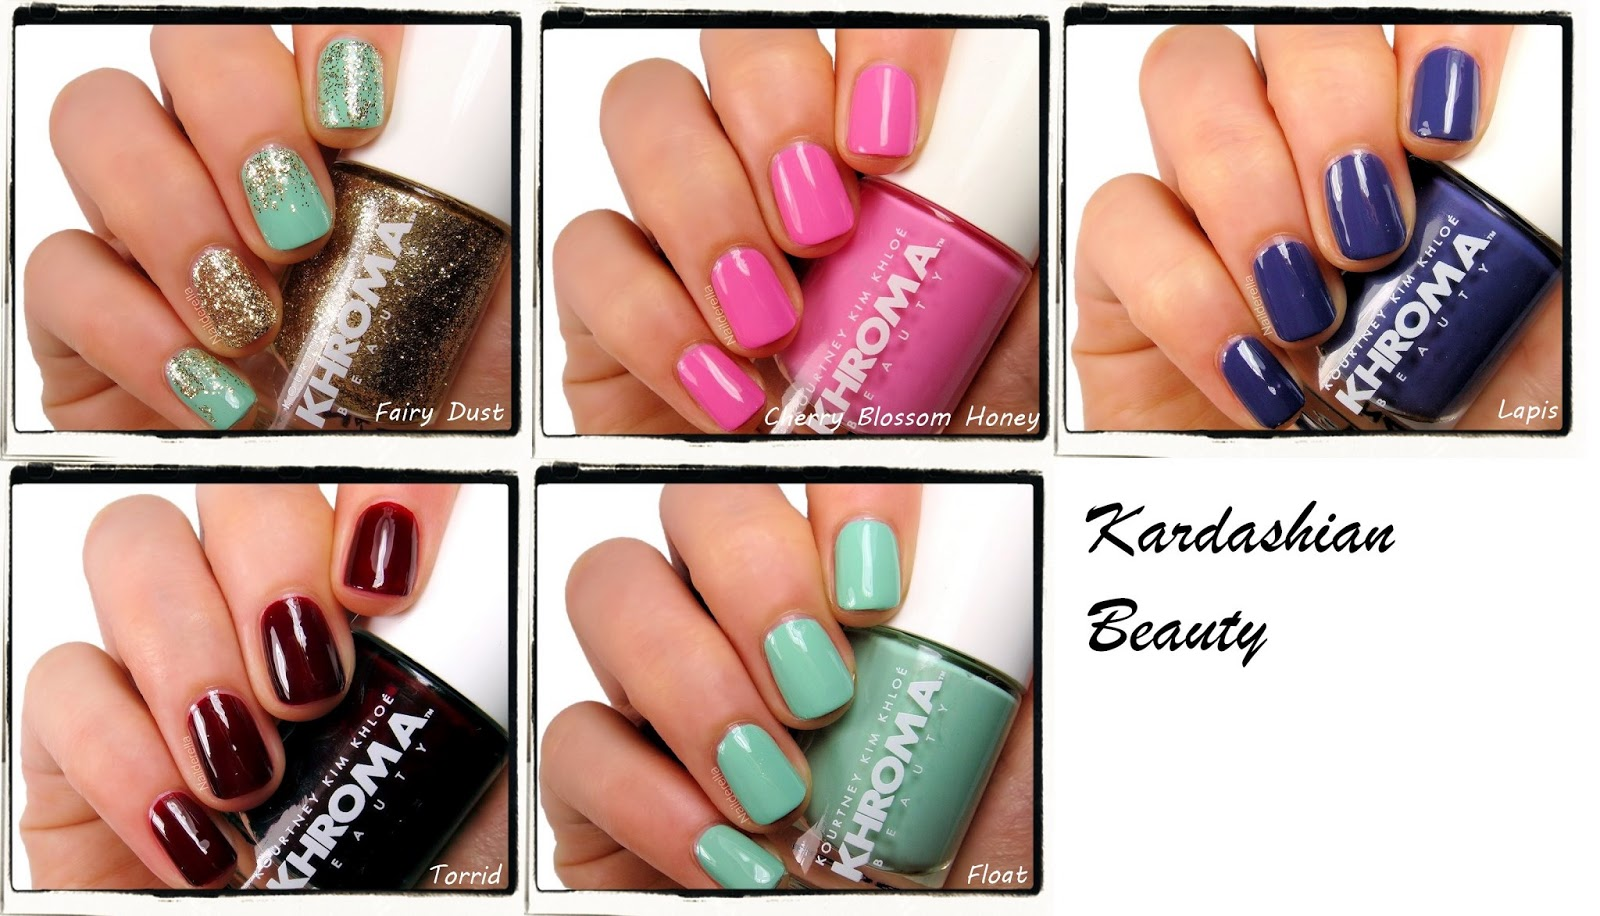 Kardashian Beauty - review of some polishes - Nailderella